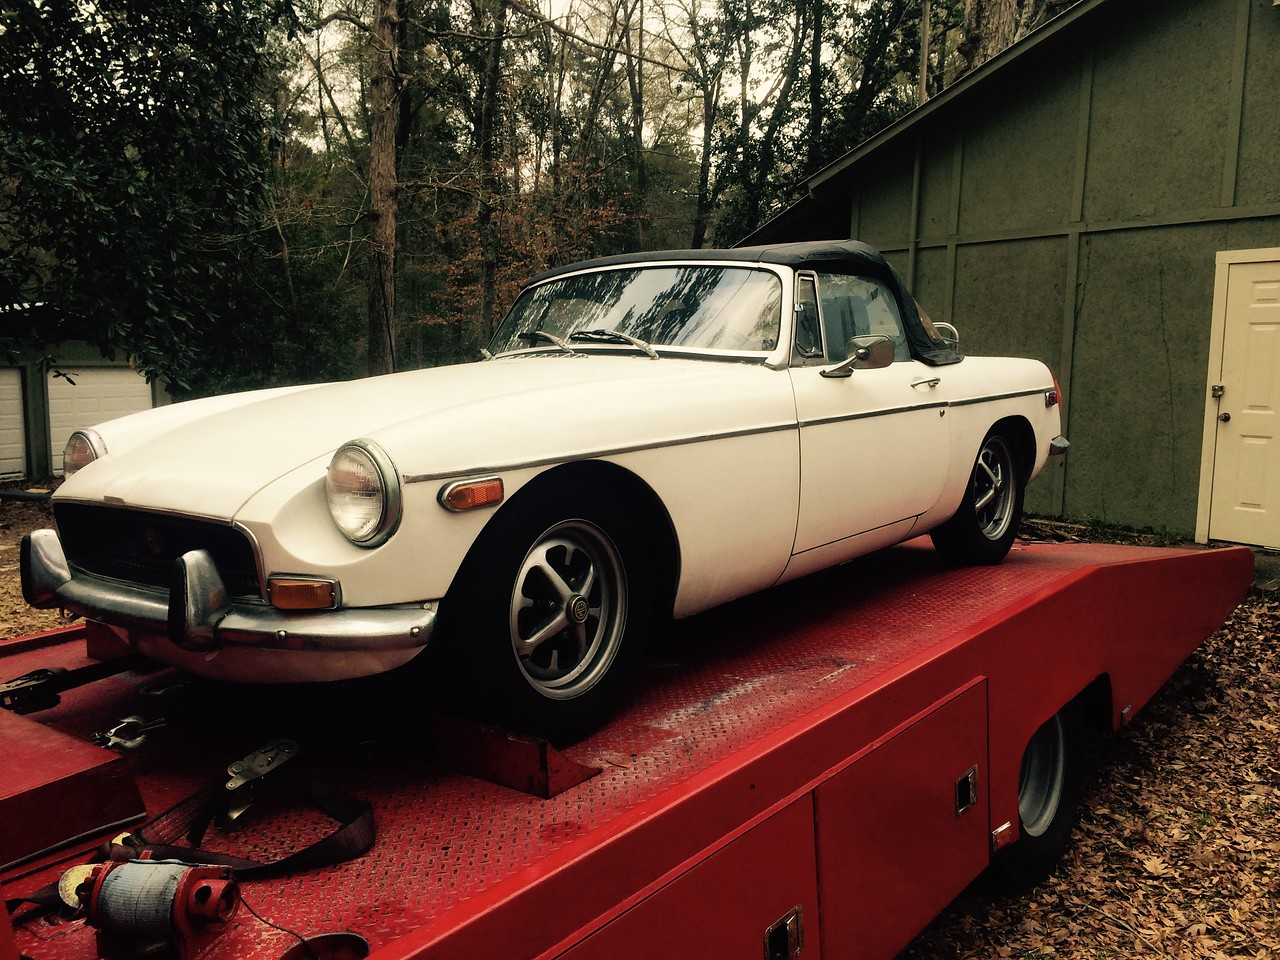 1985 MGB Roadster (Punta  Gorda, Florida to Burns, Tennessee)